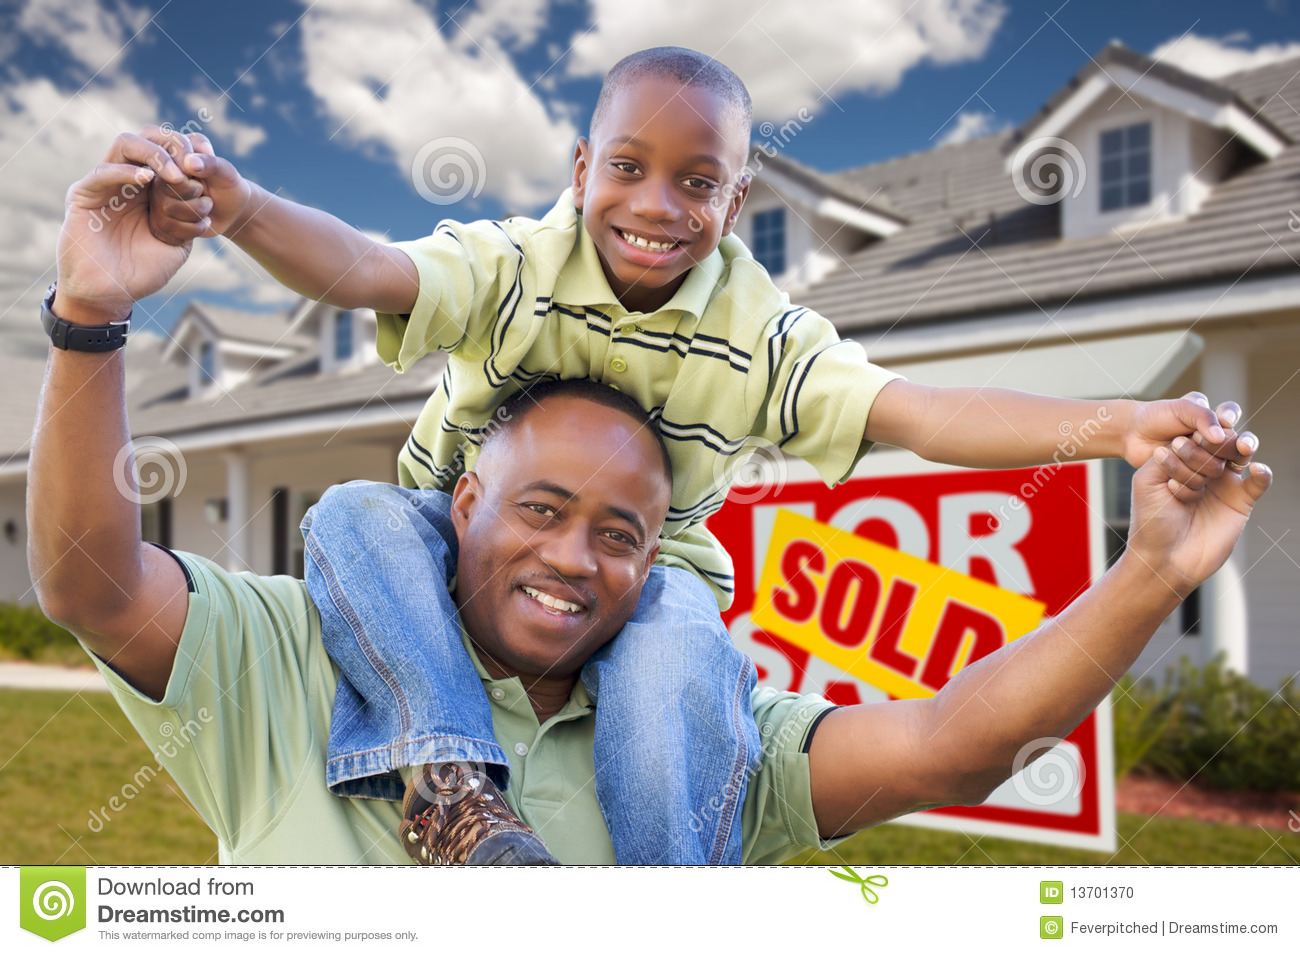 Father and Son with Real Estate Sign and Home